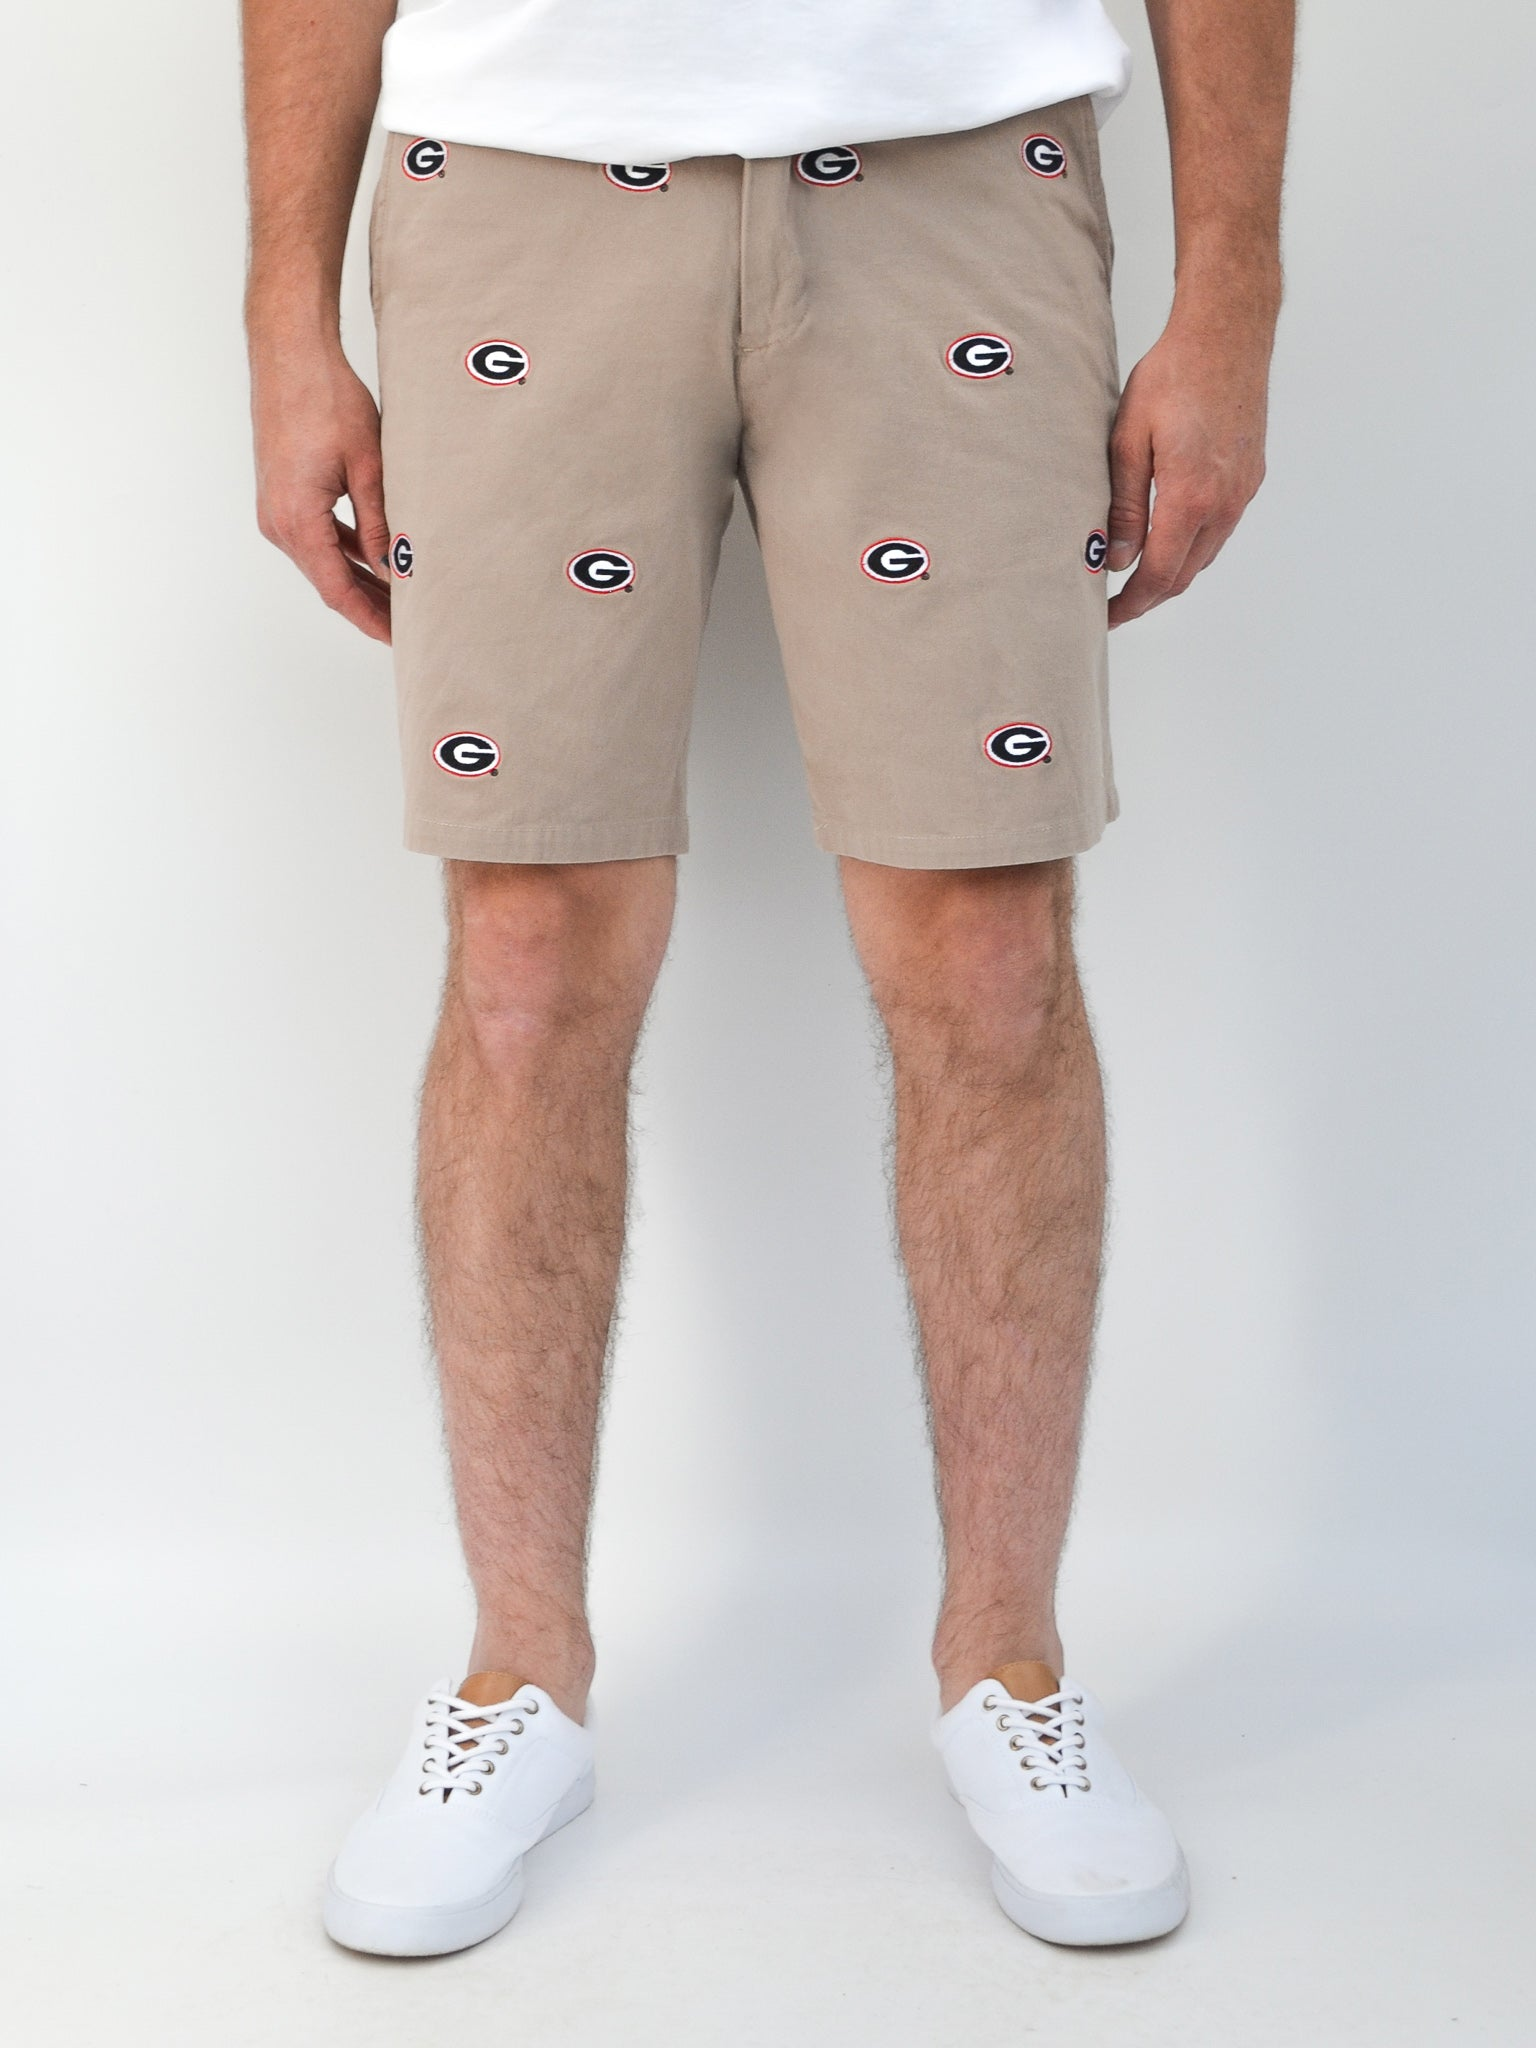 Georgia G Khaki Shorts